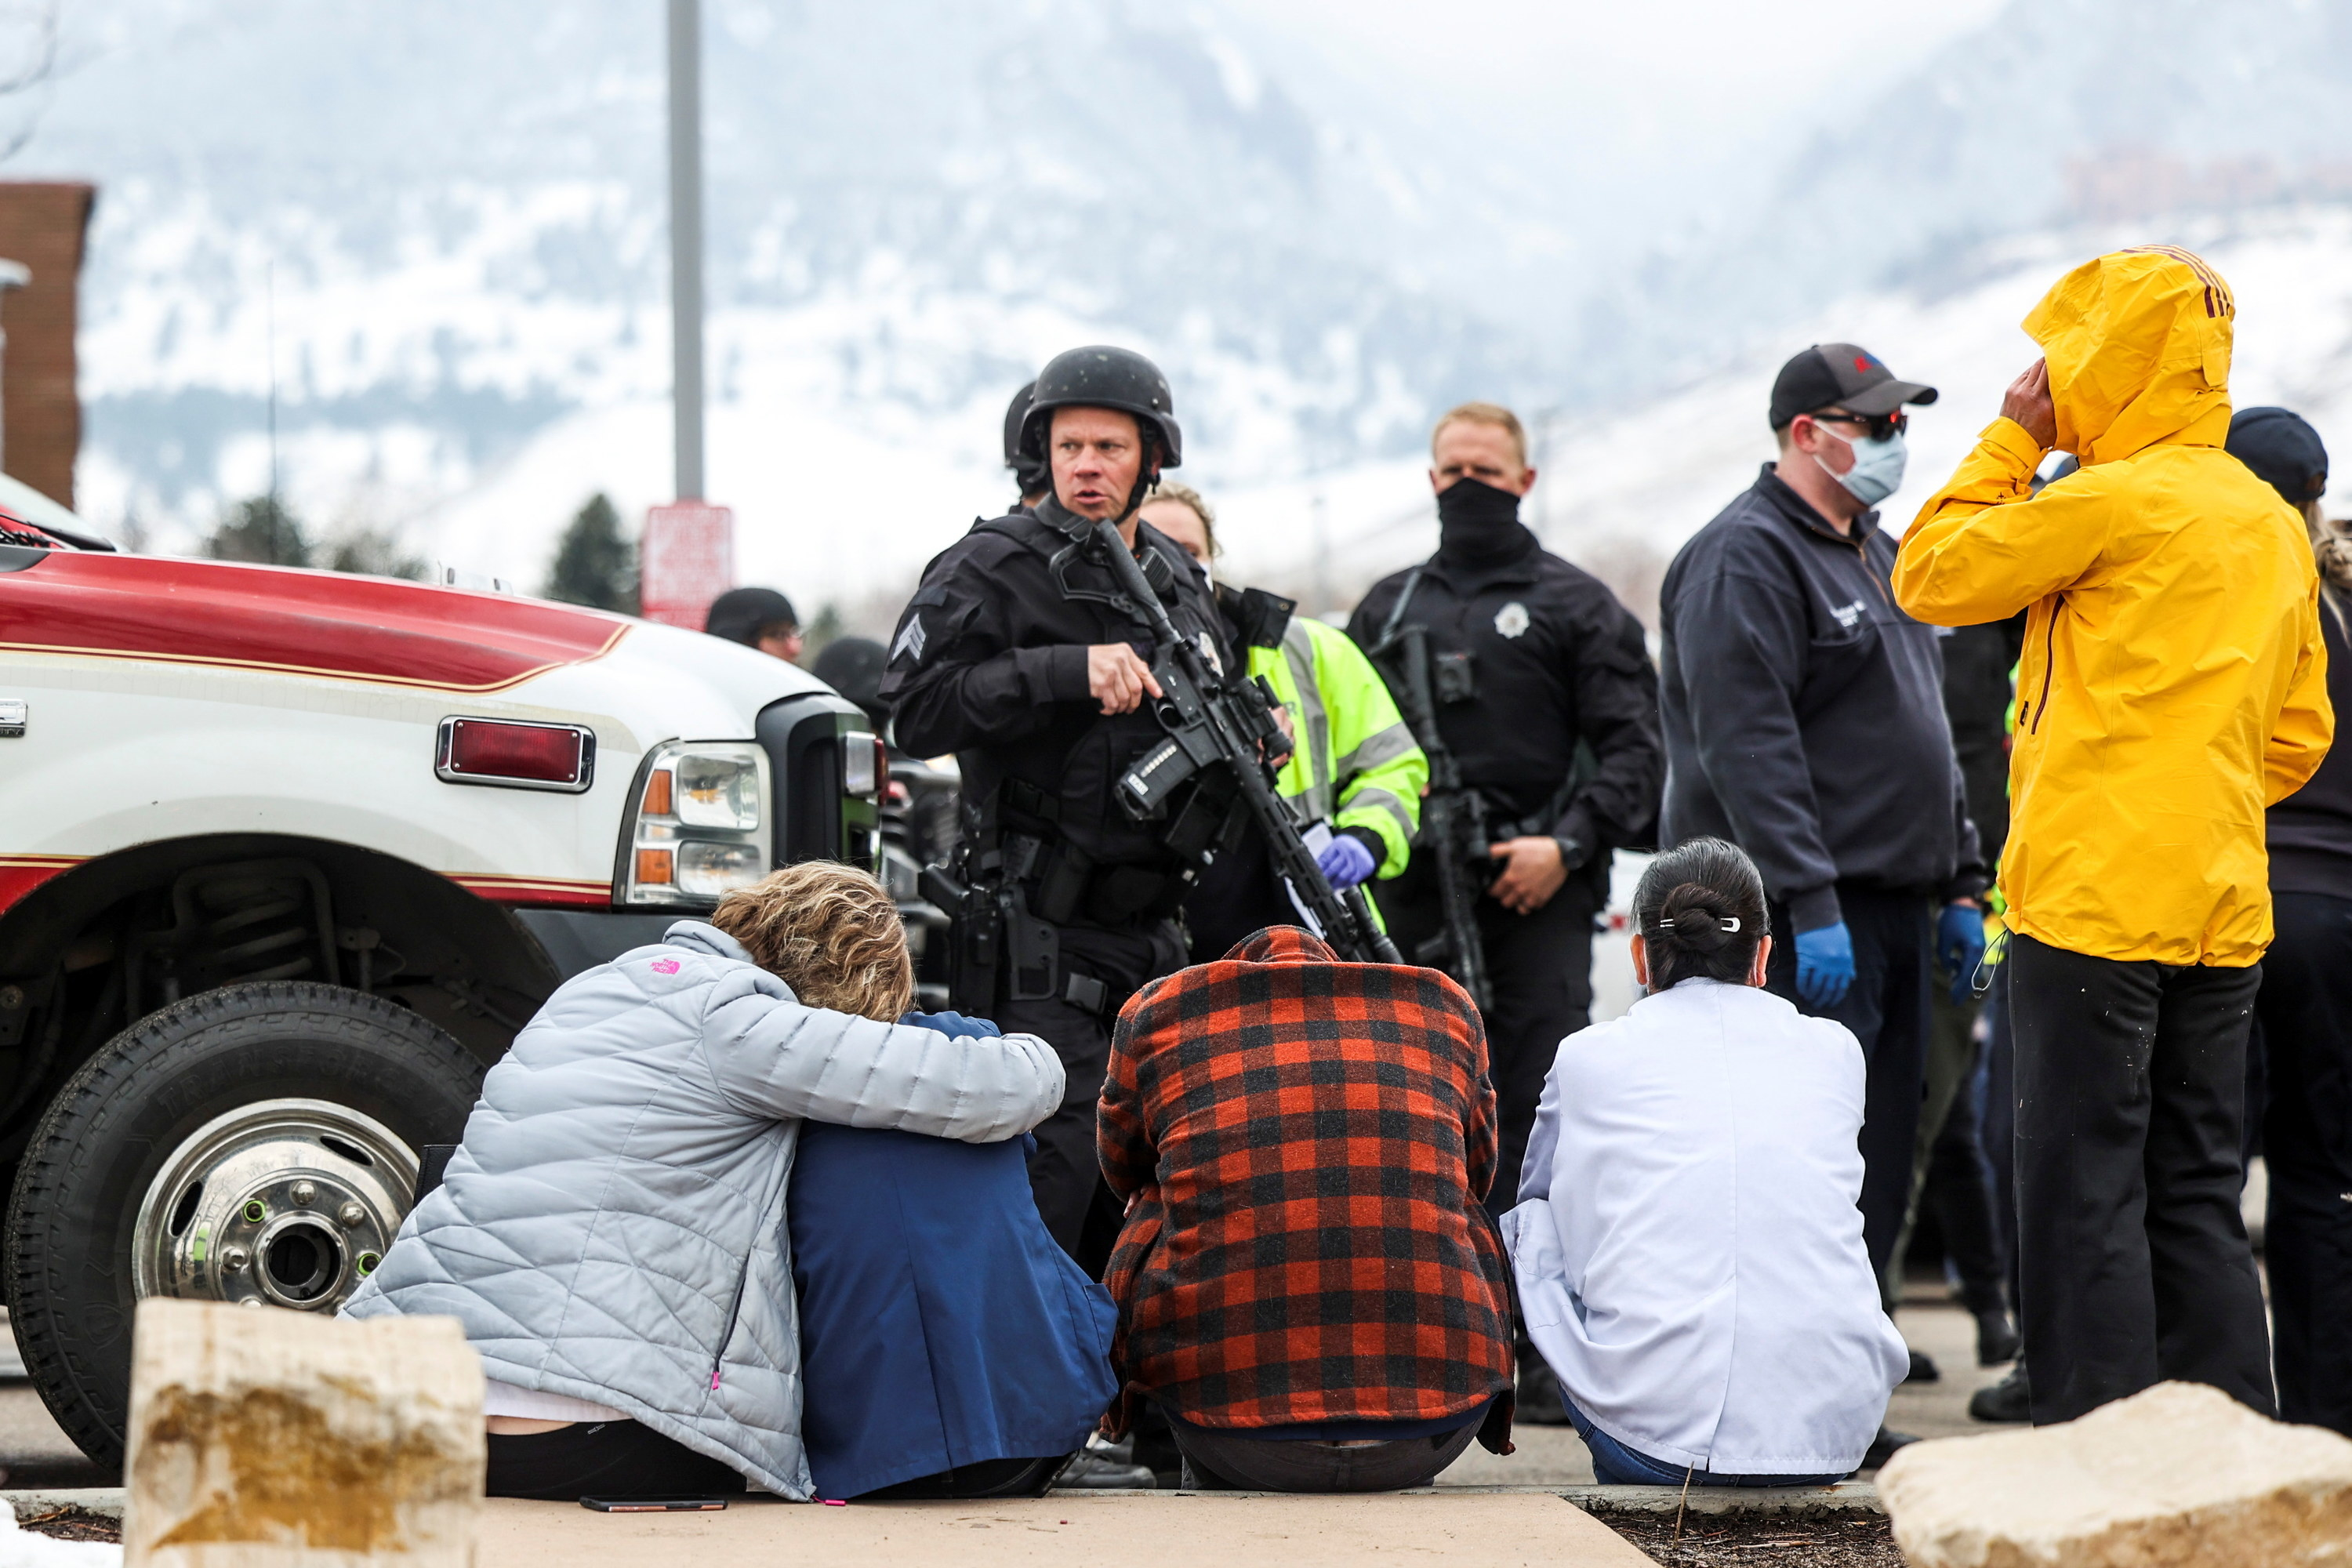 Armed police stand in the parking lot while people sit huddle on the curb